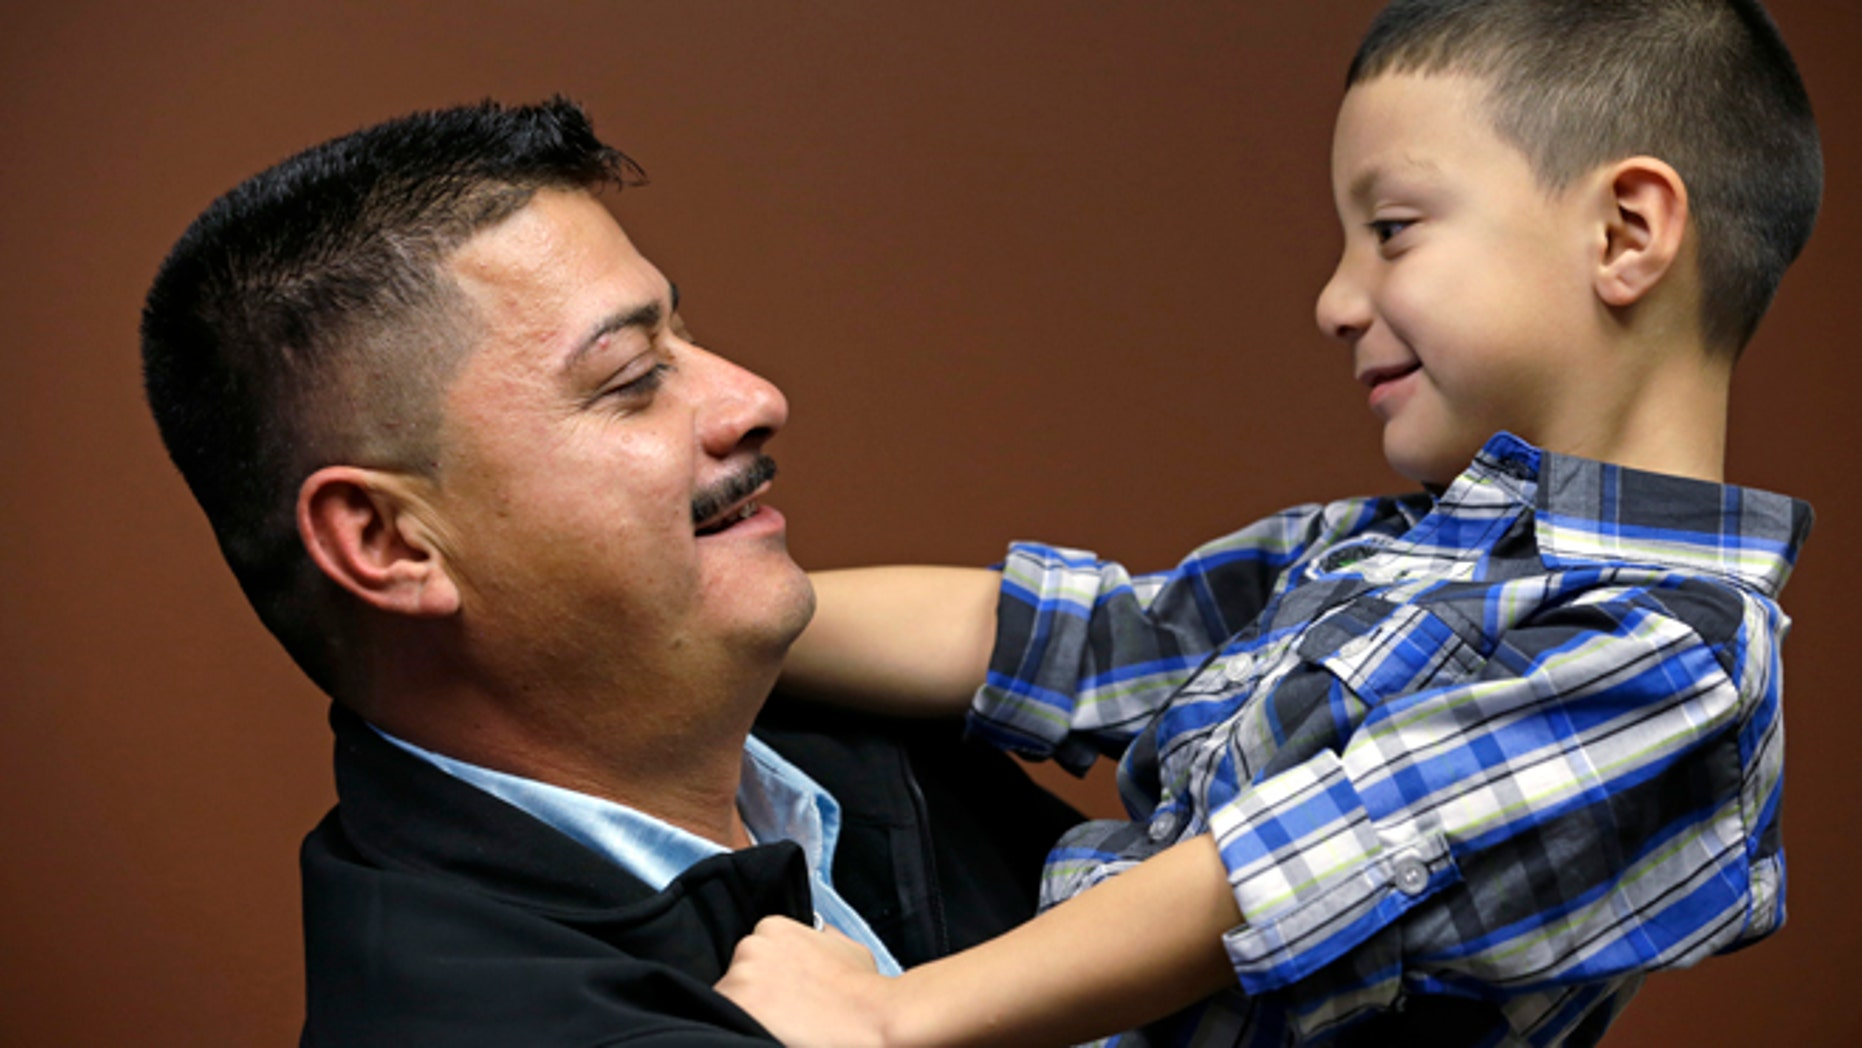 In this photo taken Friday, Oct. 17, 2014, Ignacio Lanuza-Torres holds his son, Isaiah, 4, as he has his photo taken in Seattle. A U.S. Immigration and Customs Enforcement attorney forged a document in an attempt to deport Lanuza-Torres, an immigrant seeking to stay in the country with his wife and children, according to a new lawsuit. The lawsuit, filed Thursday, Oct. 23, 2014, in a Seattle U.S. District Court, seeks $500,000 in damages for Ignacio Lanuza-Torres because the forgery cost him years of courtroom battles and uncertainty over his future. (AP Photo/Elaine Thompson)